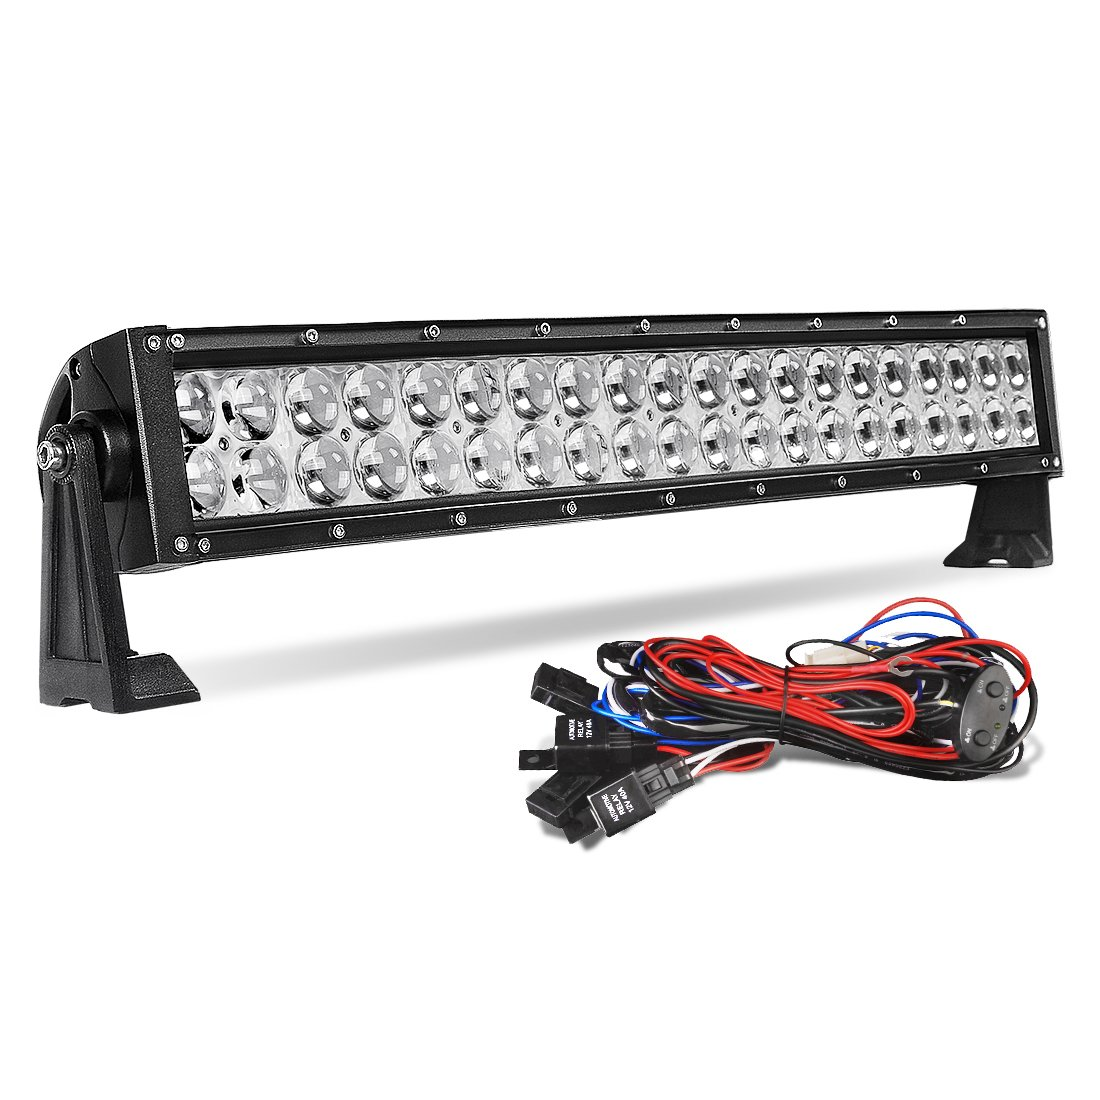 Amazon.com: LED Light Bar 24 Inch AUTO 4D 200W with 8ft Wiring ...